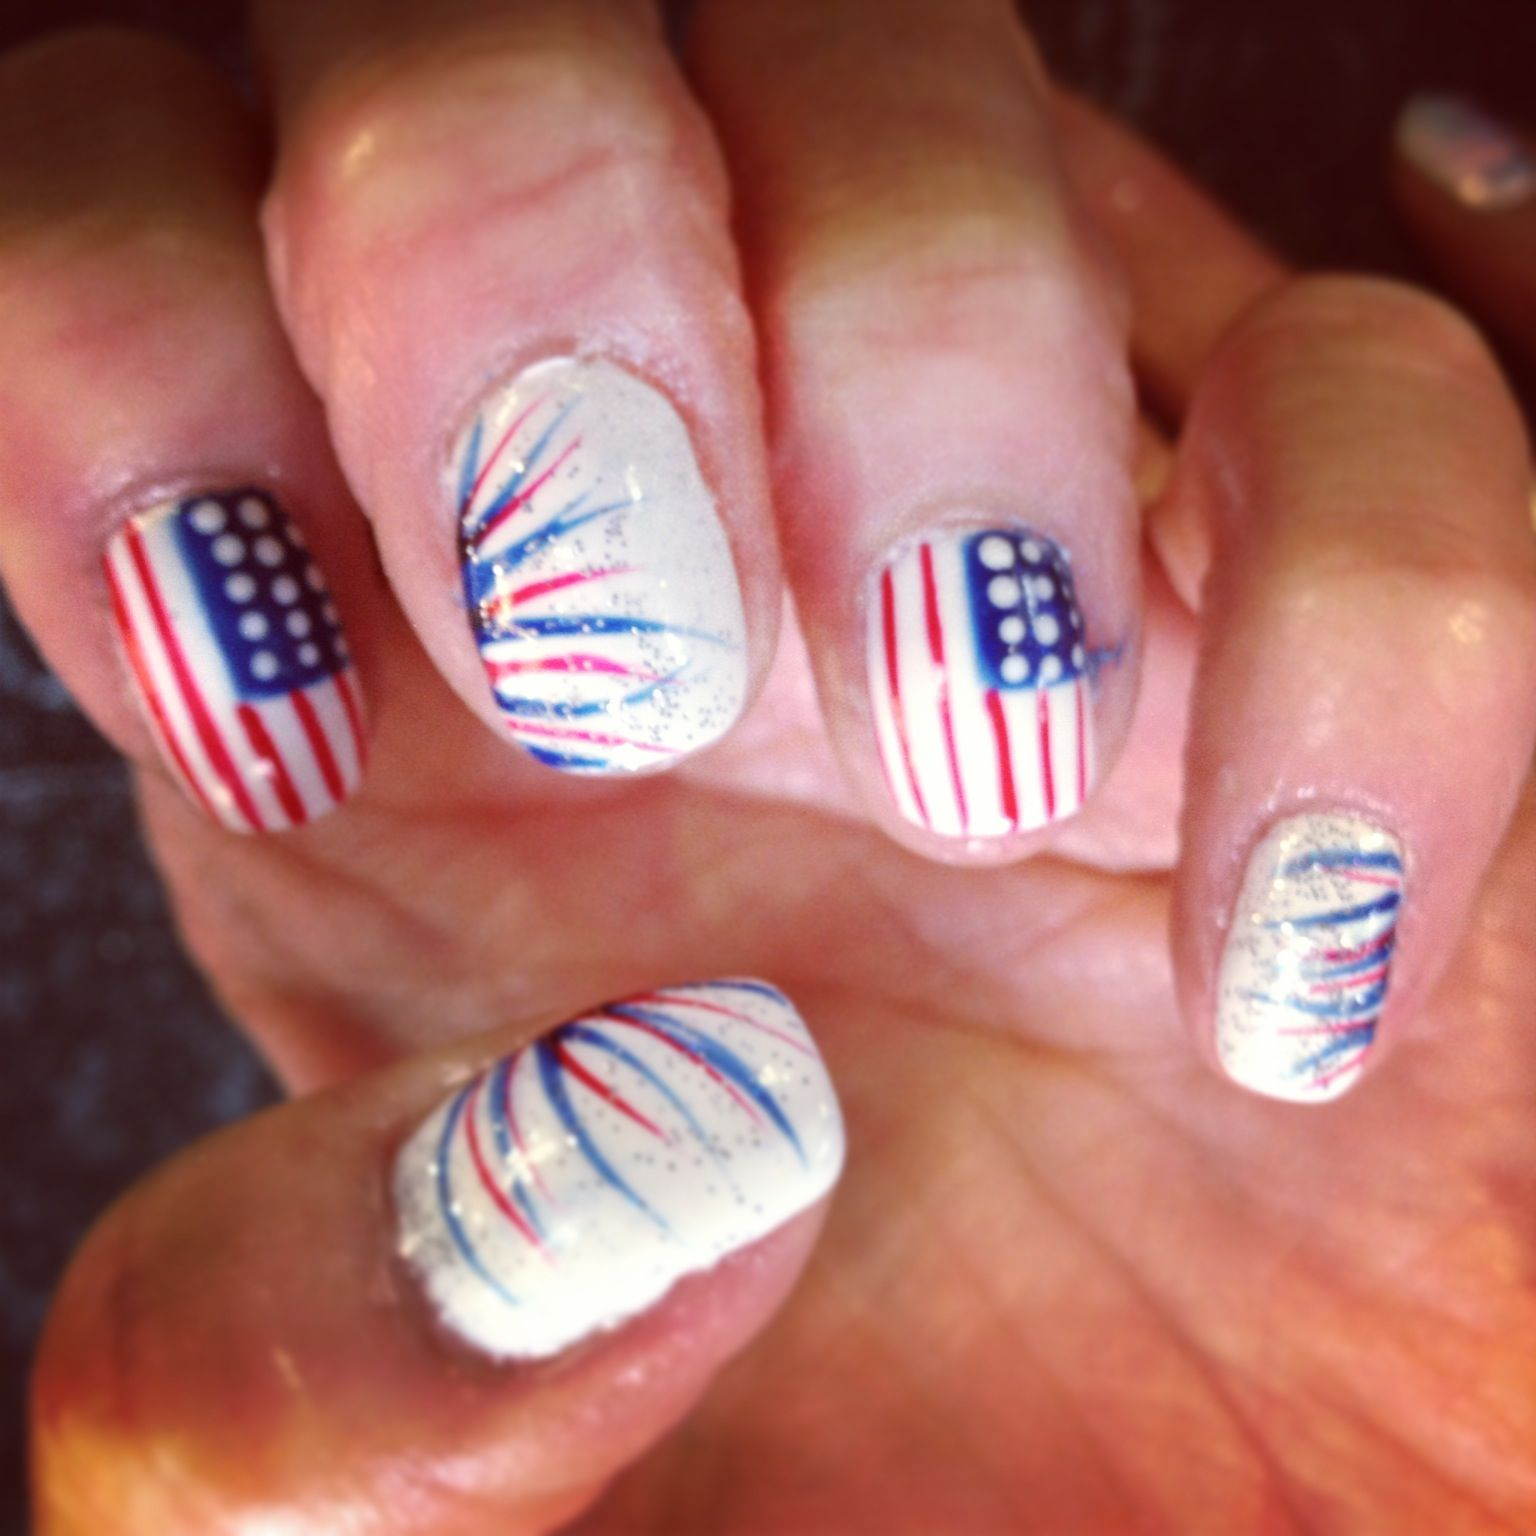 Nails Shellac Gelish Gel Nails Nail Art Red White Blue America